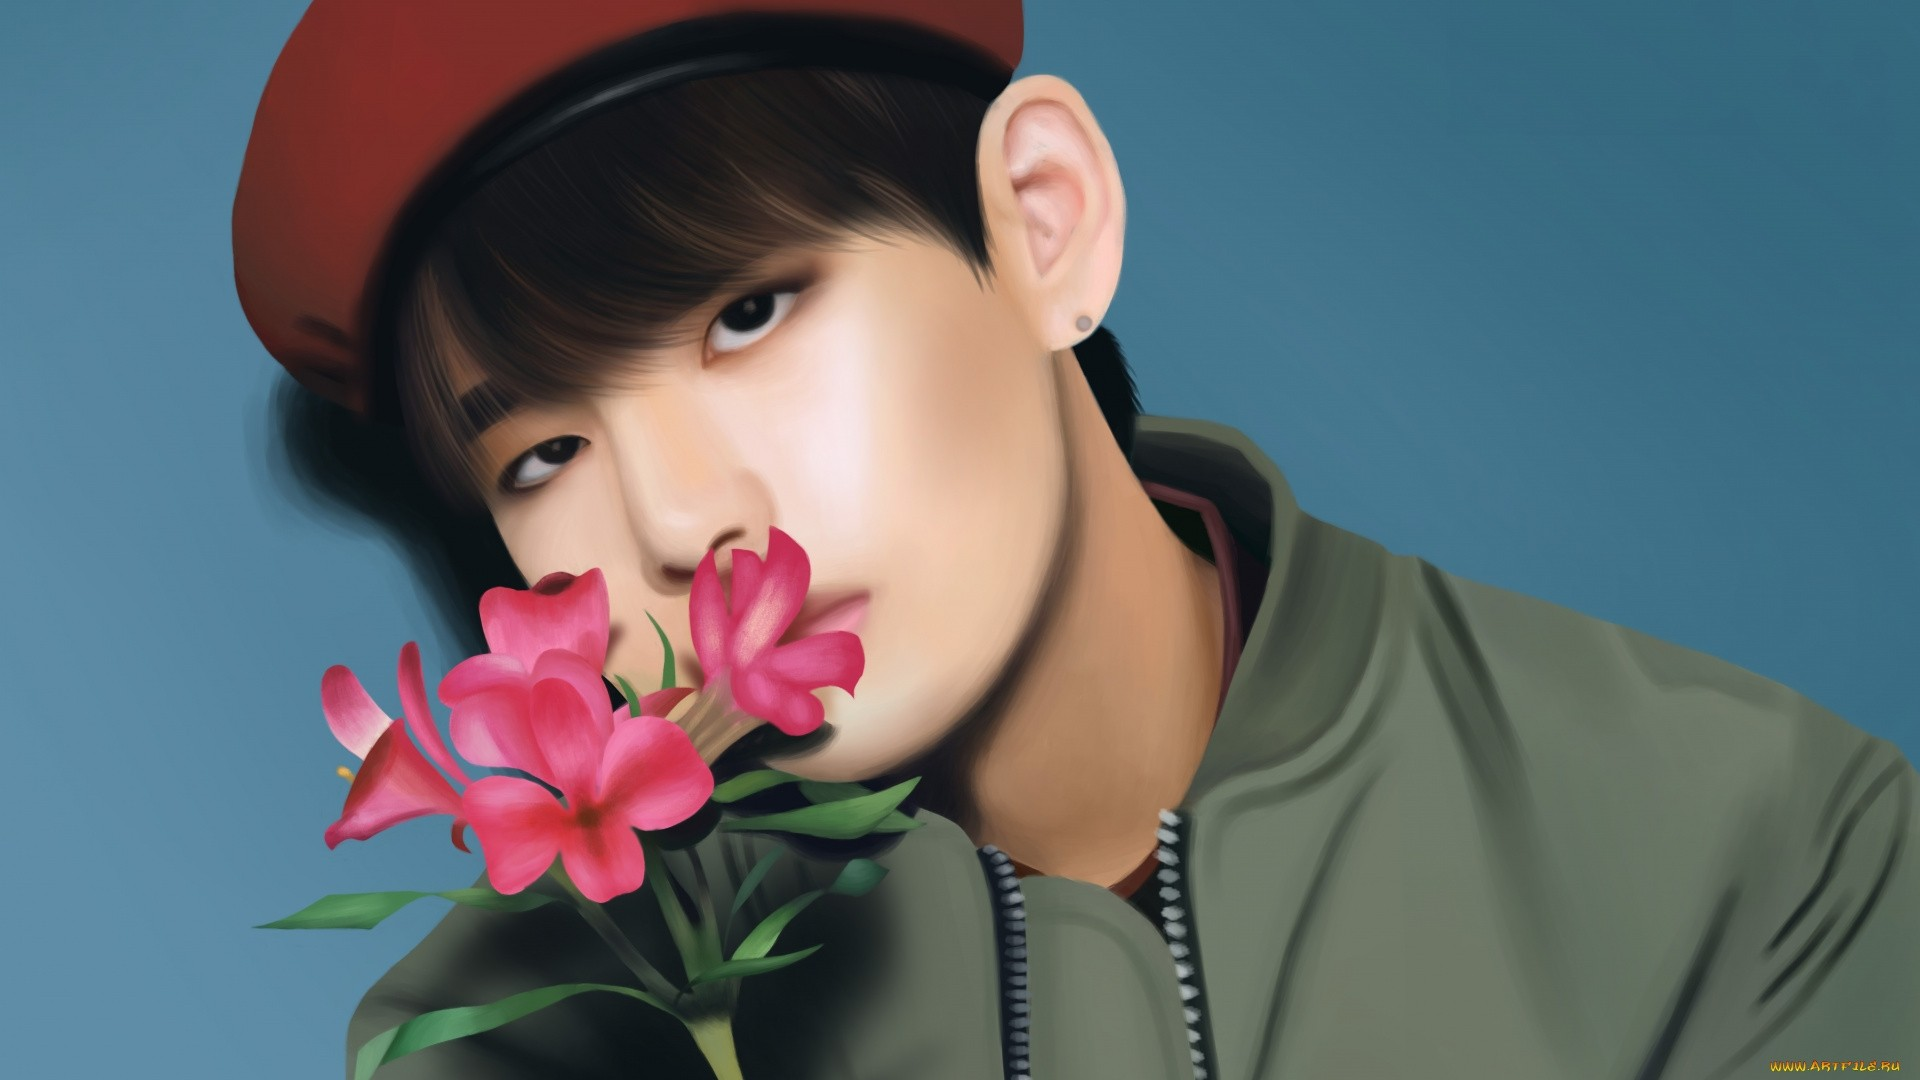 Taehyung Free Wallpaper and Background